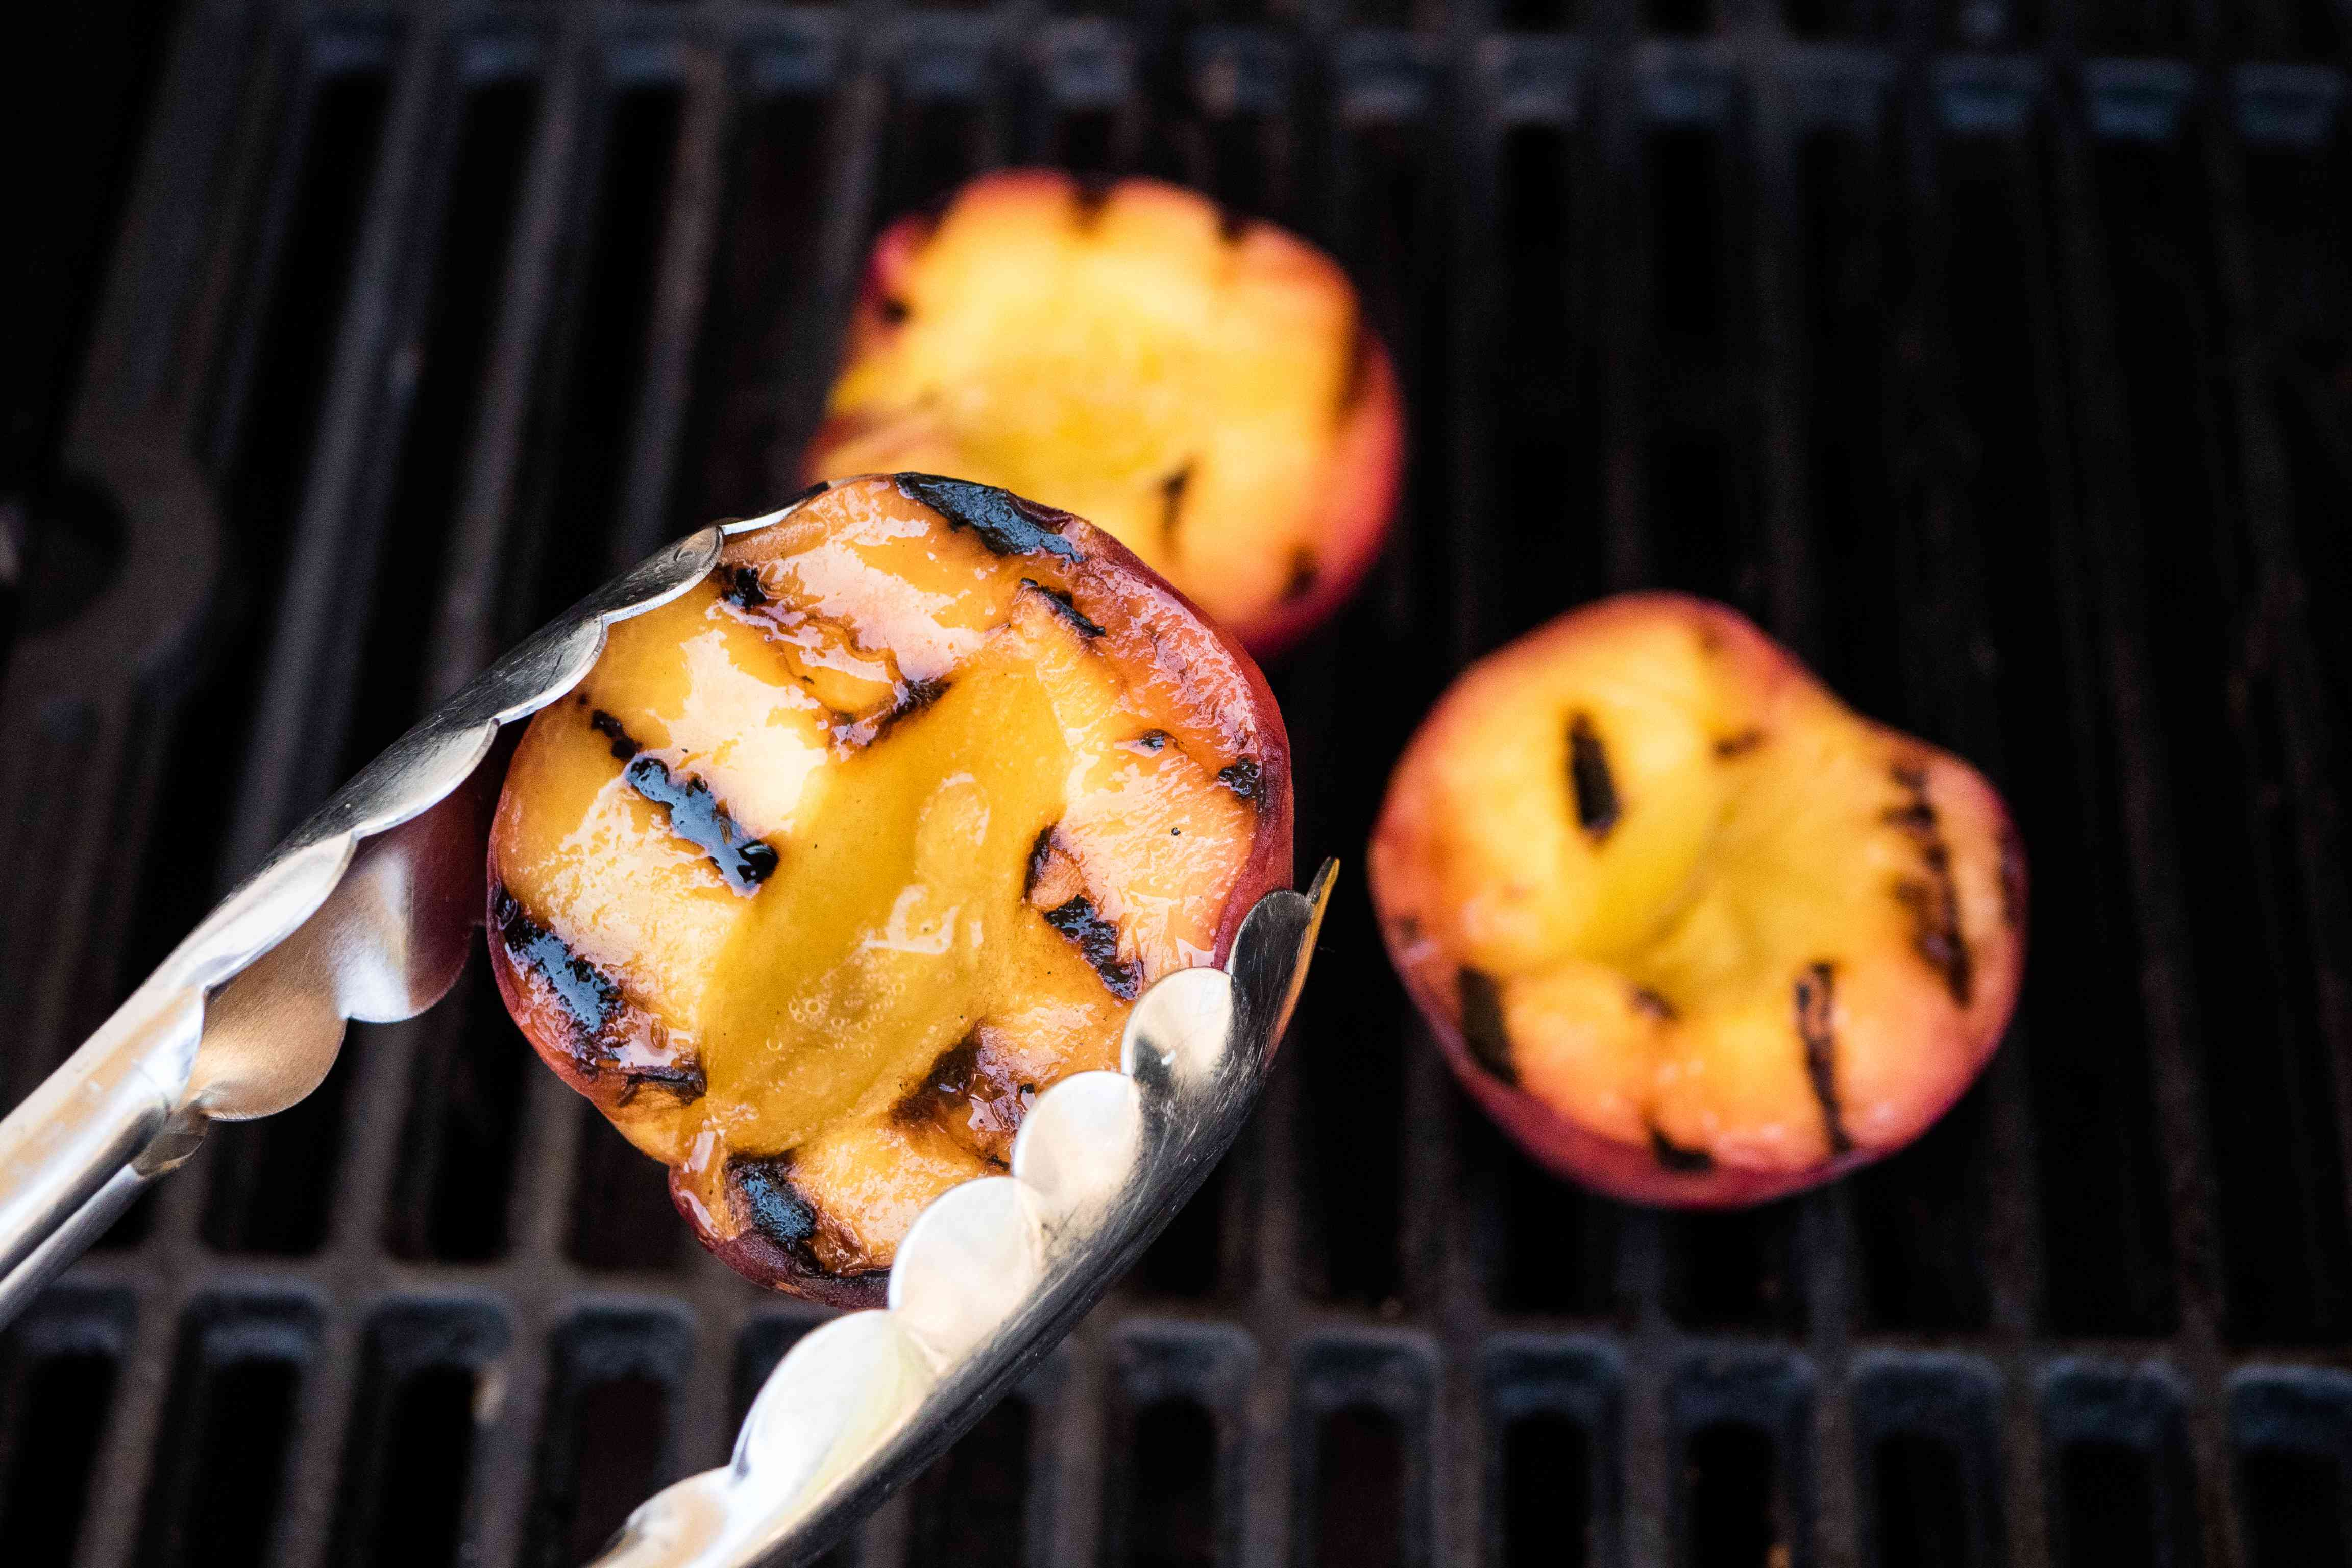 Holding a grilled peach with tongs to make a grilled peach margarita.